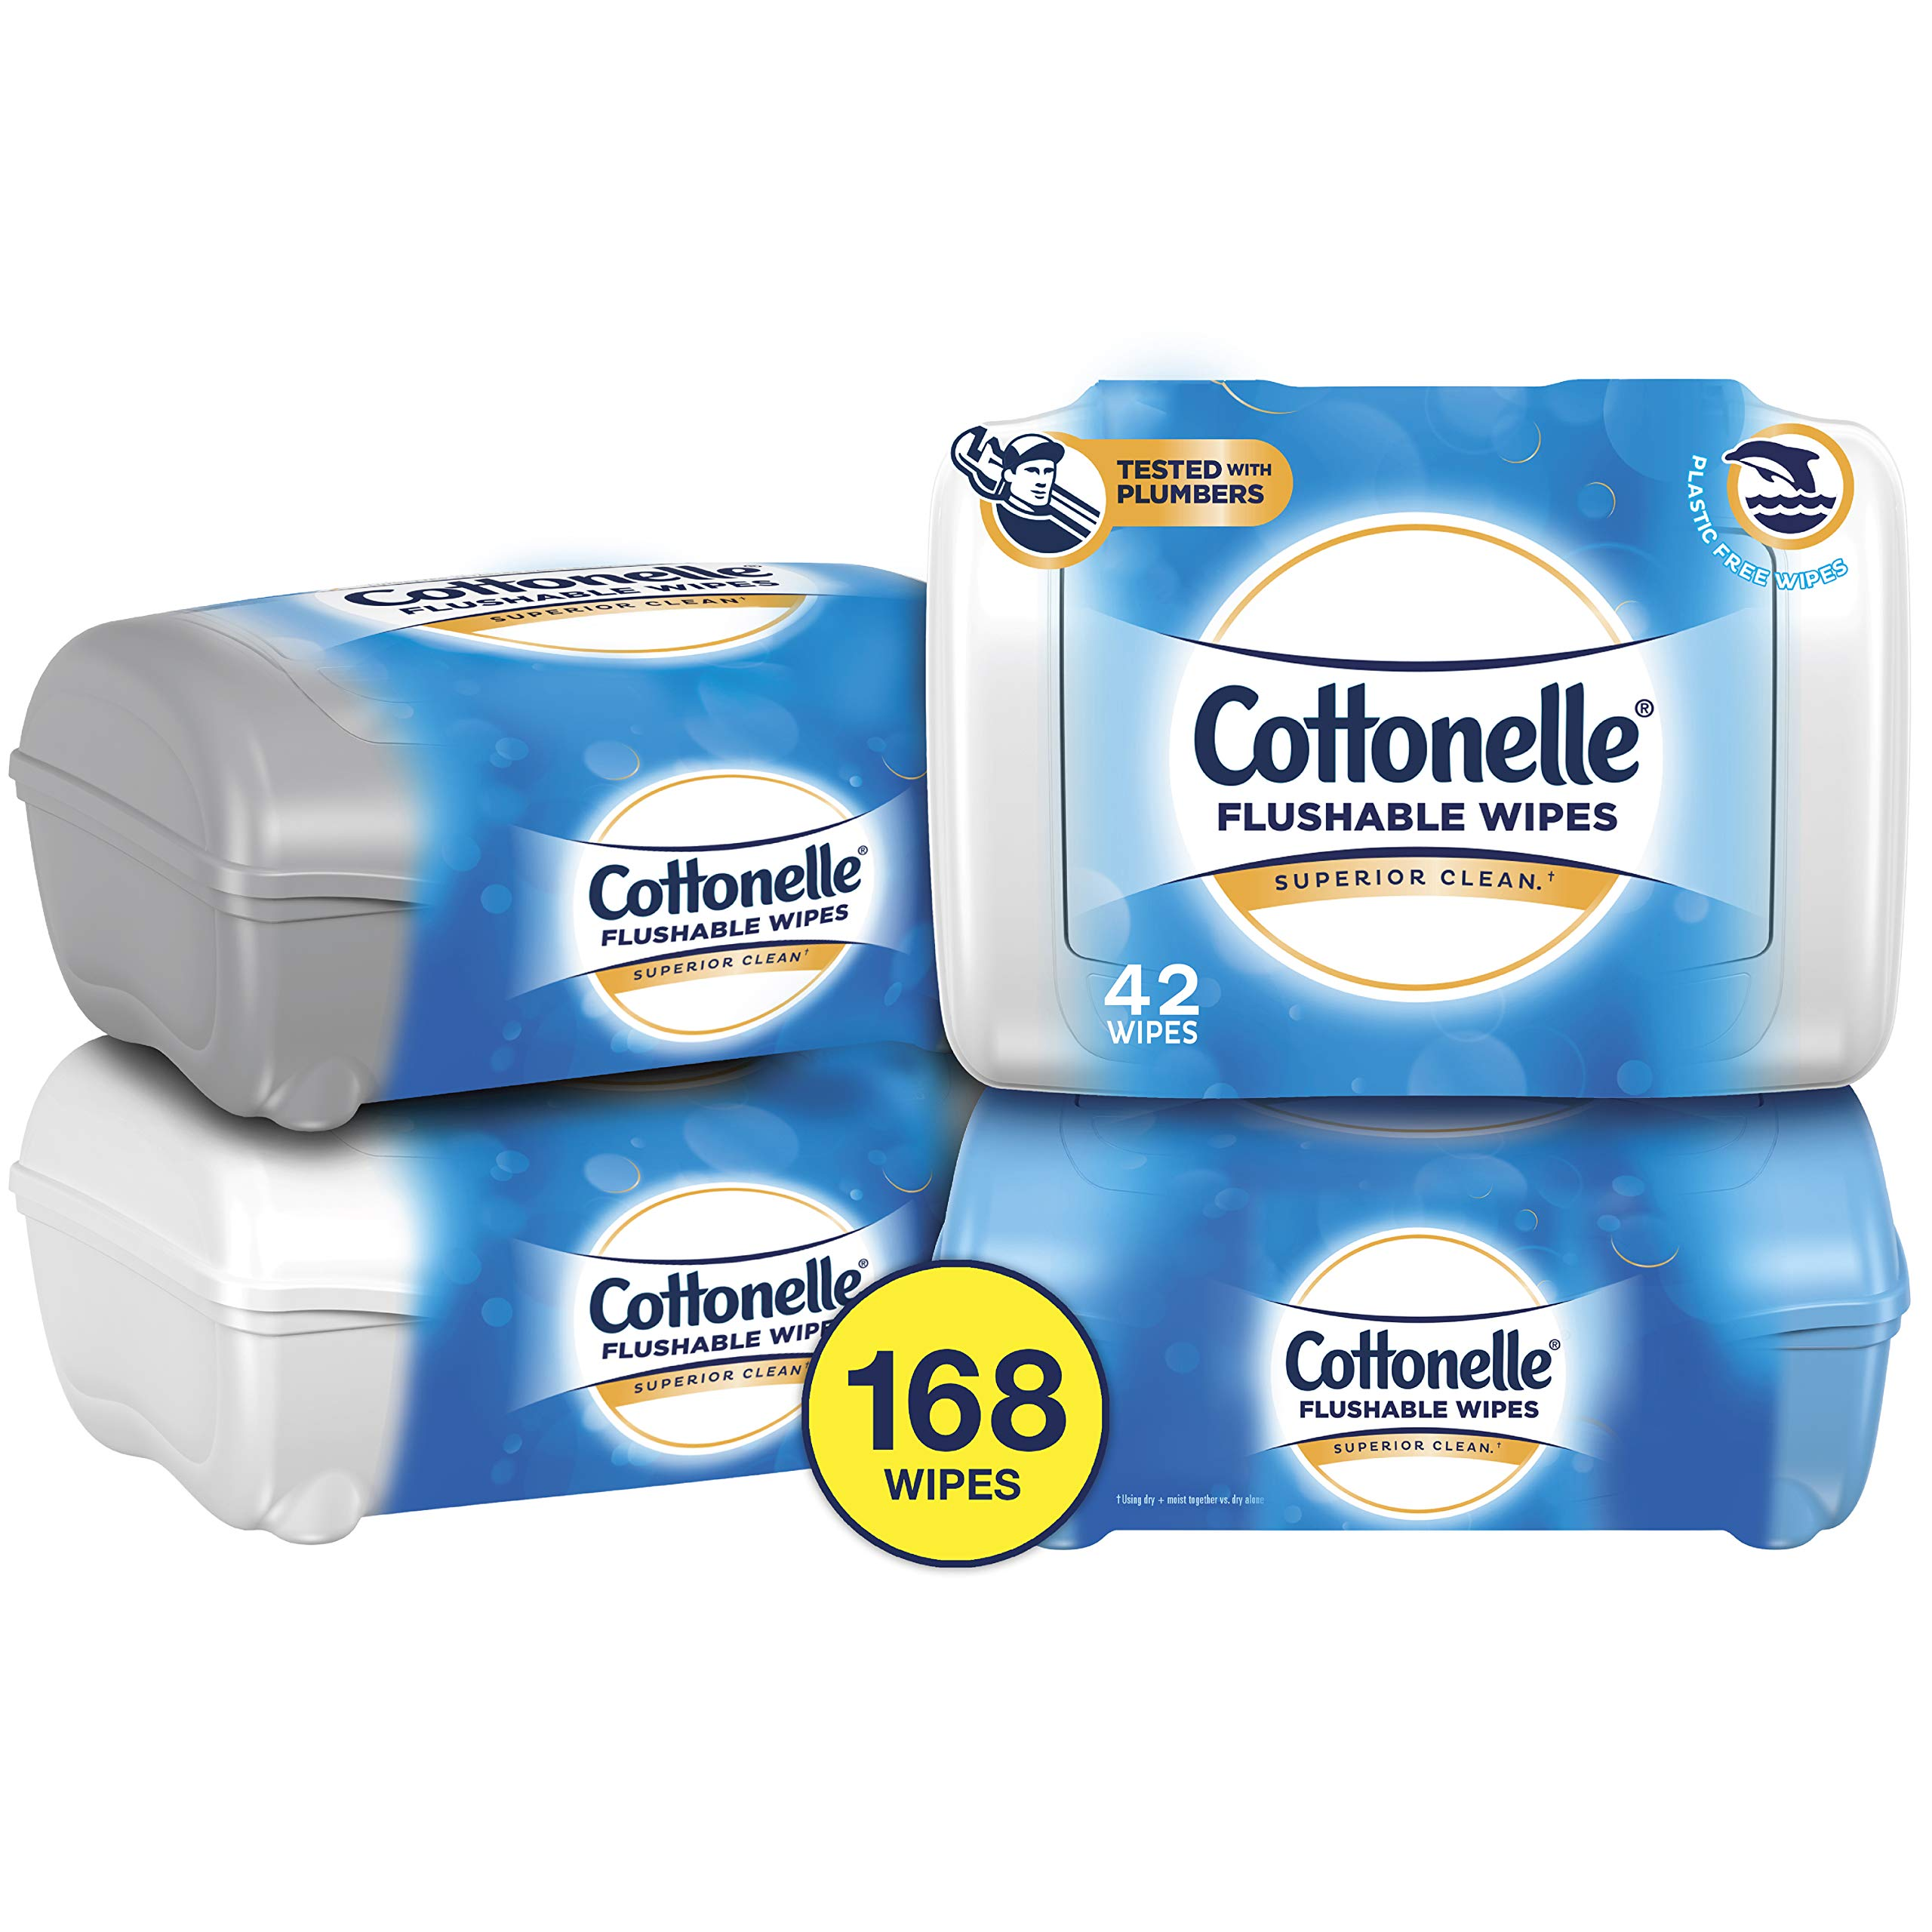 Cottonelle Flushable Wet Wipes, 42 Wipes per Pack by Cottonelle